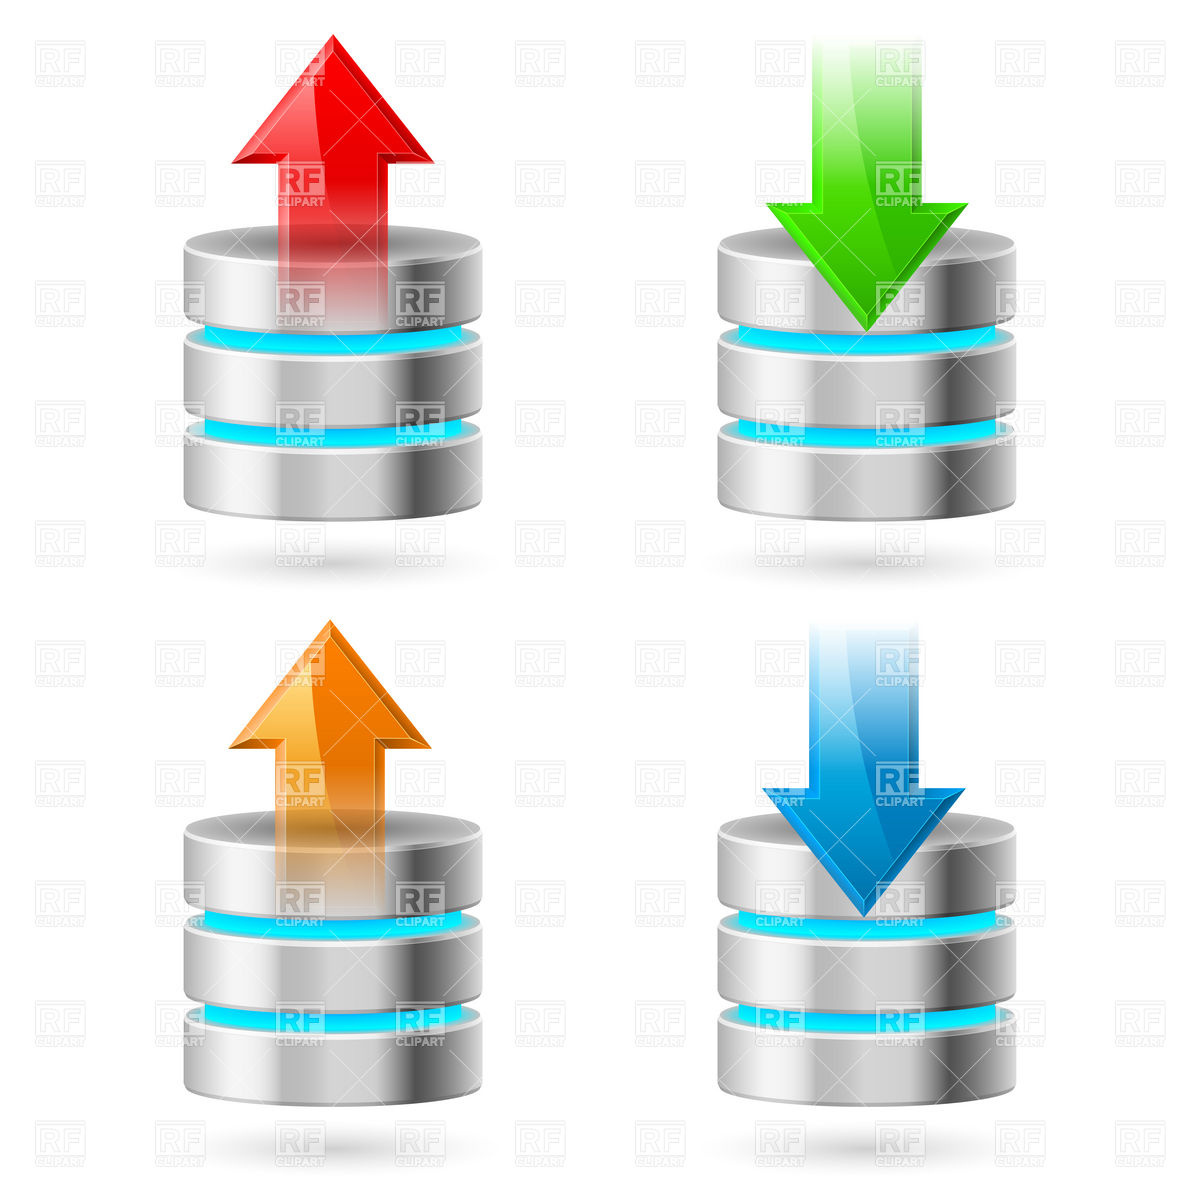 1200x1200 Computer Cylindrical Database Icon With Arrow Vector Image